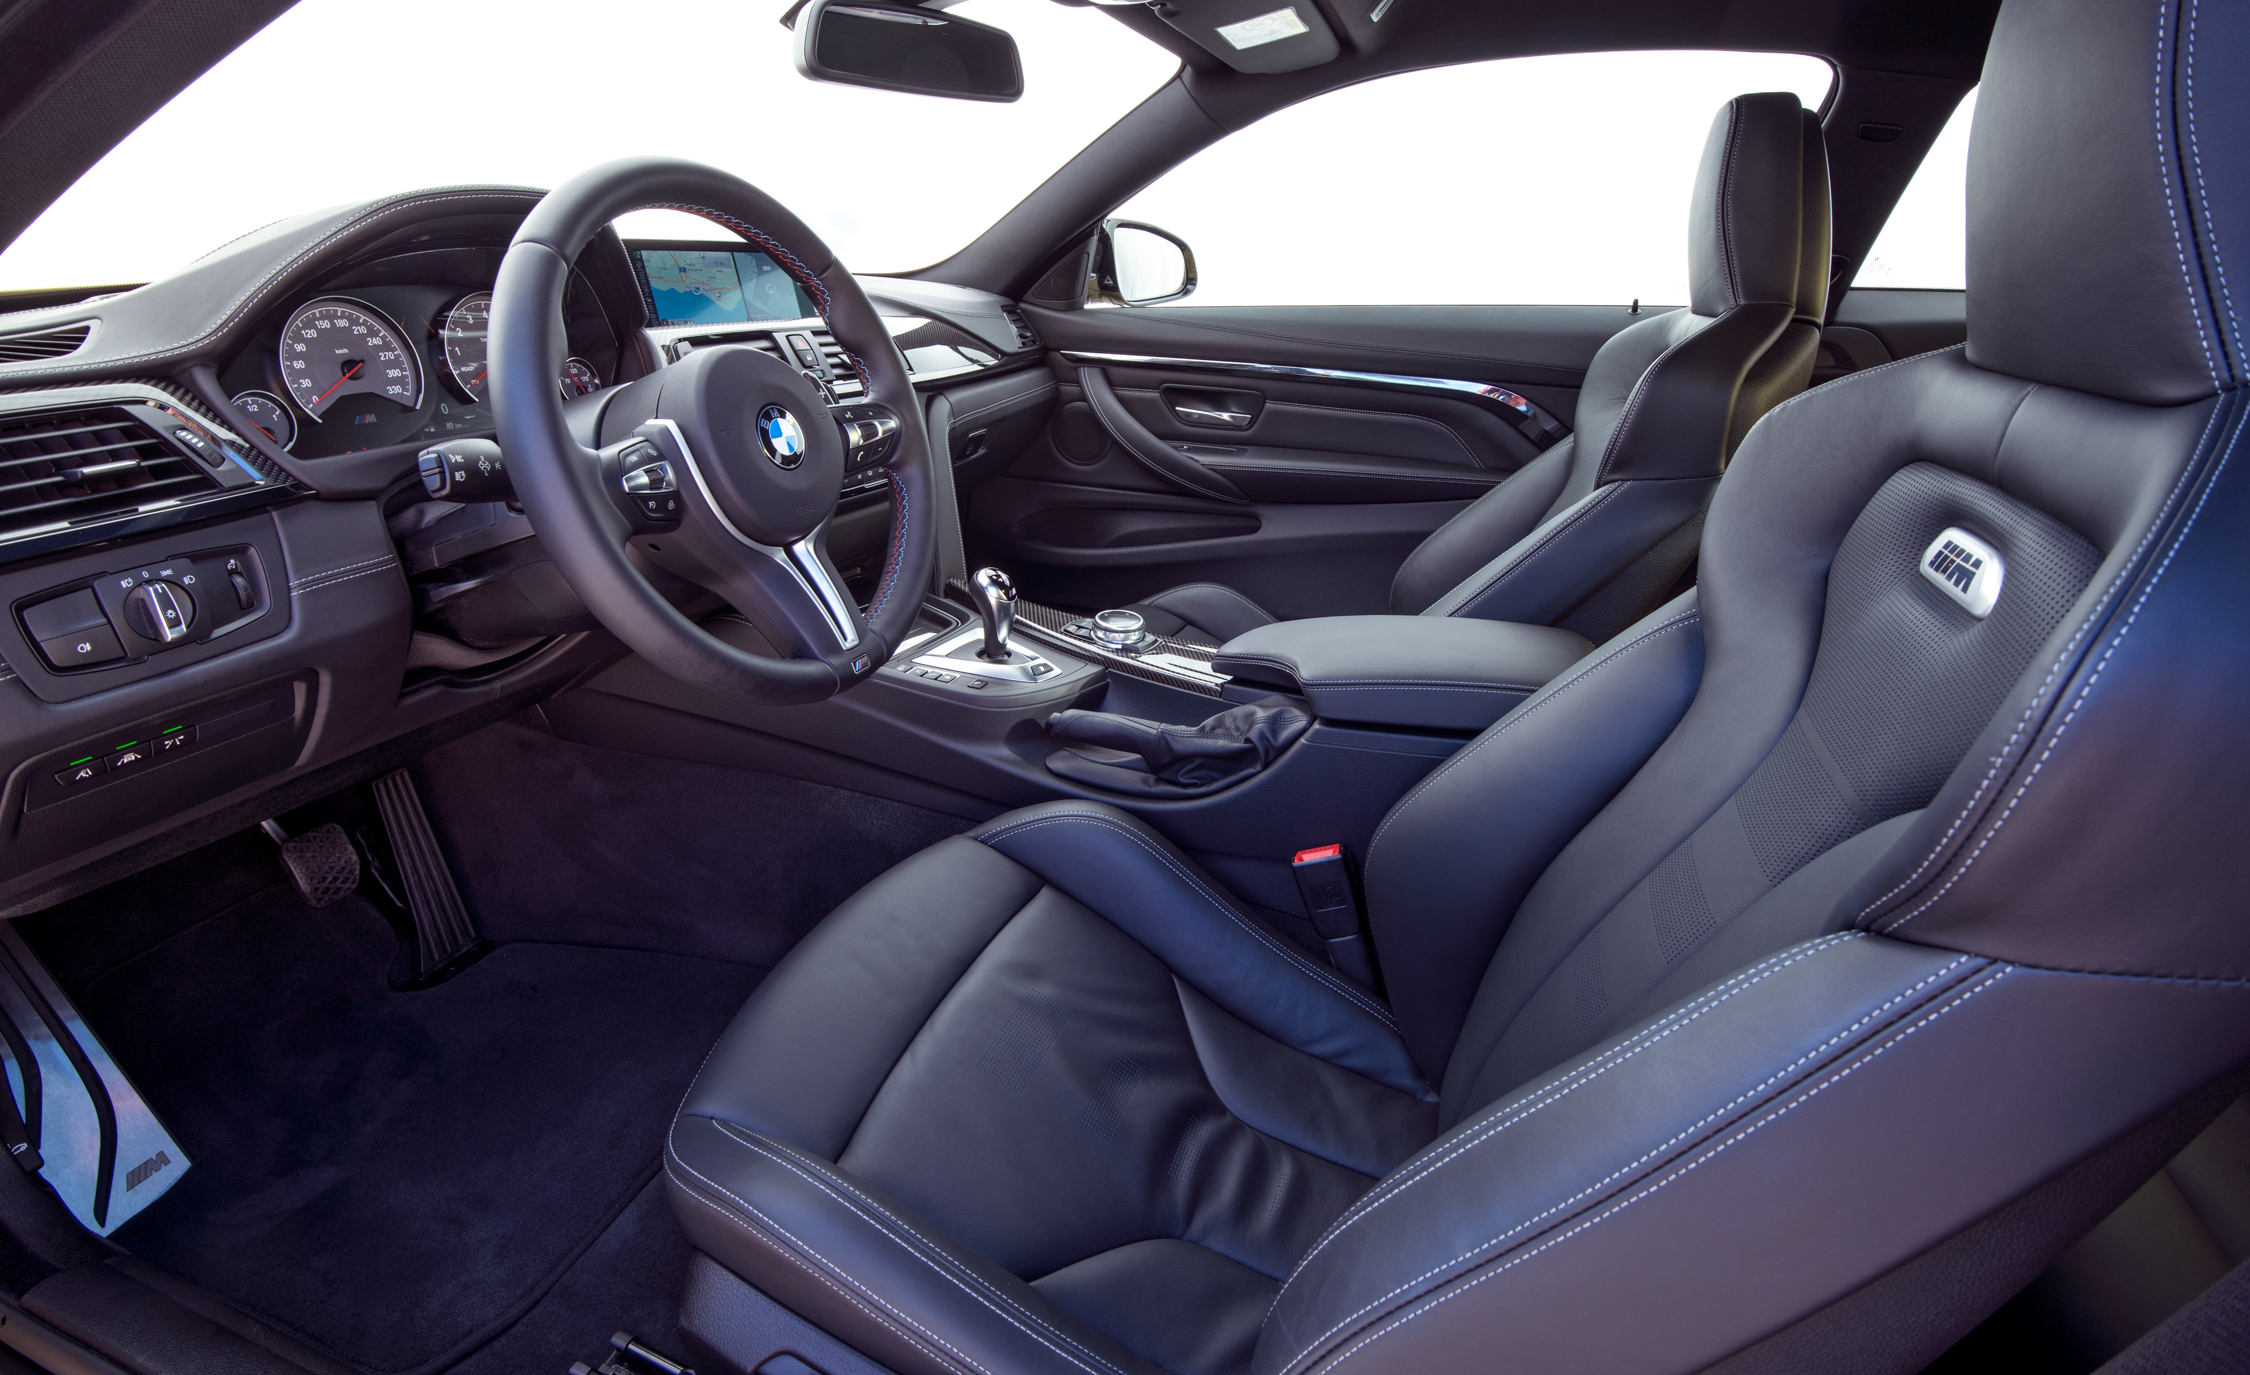 2015 BMW M4 Coupe Interior (Photo 19 of 41)